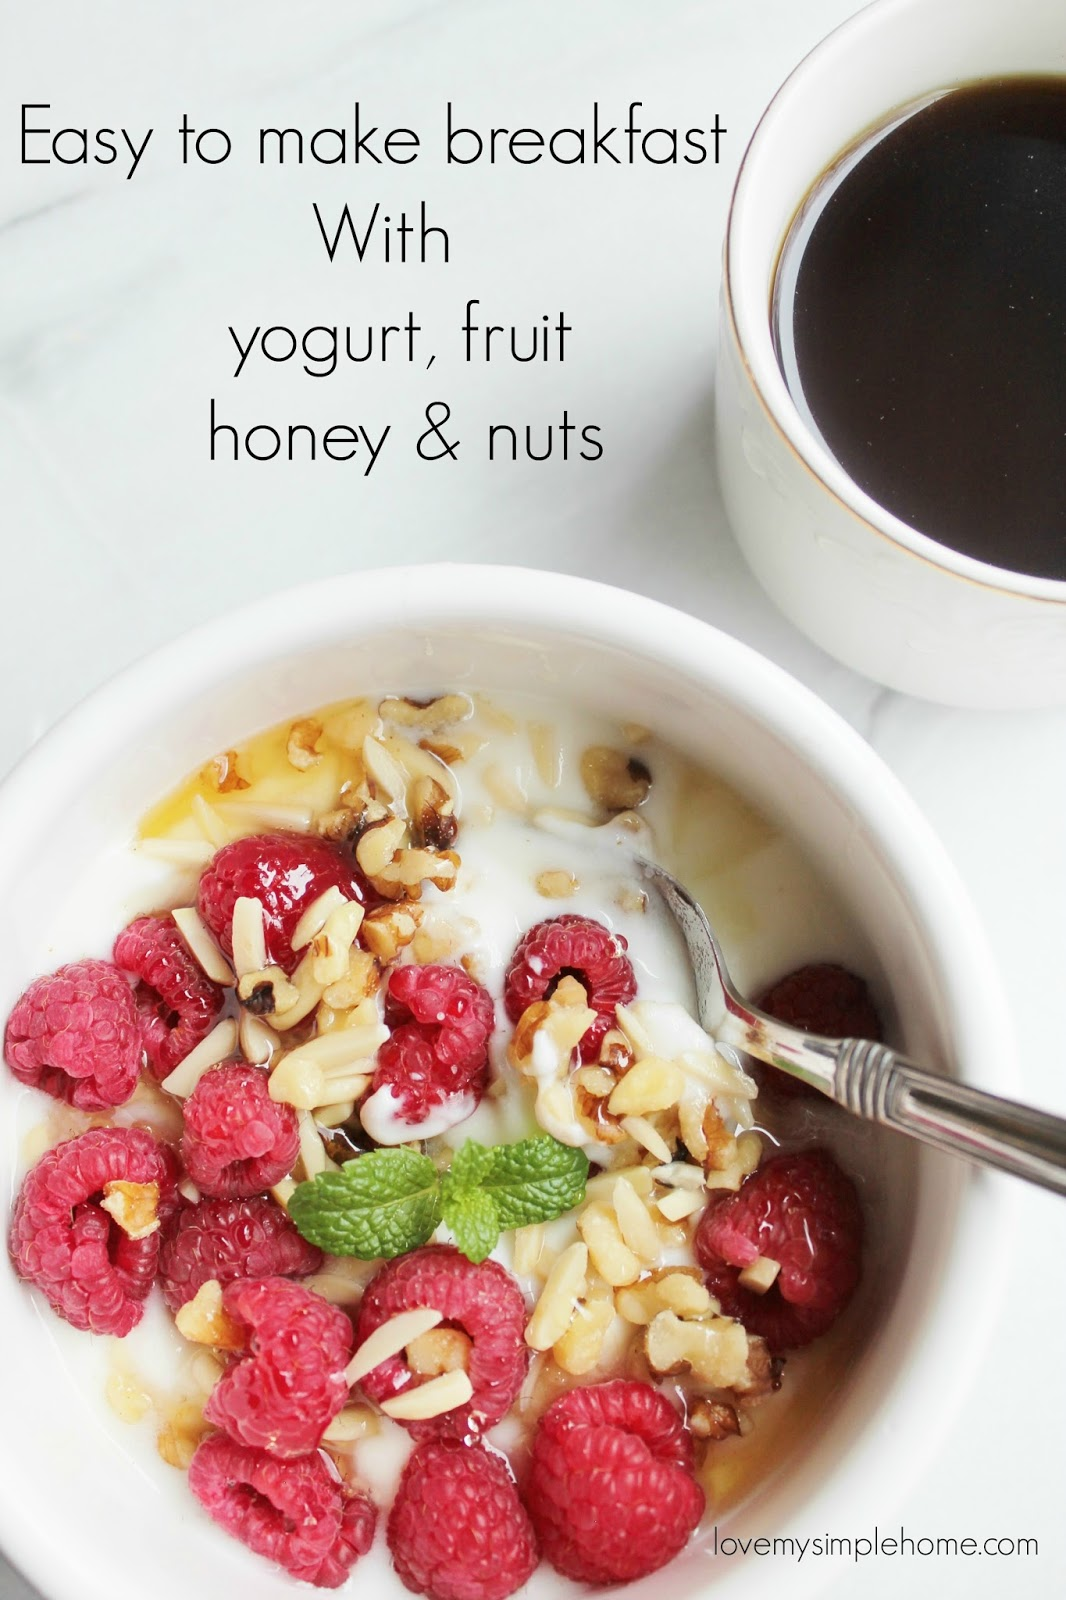 Healthy Breakfast Recipe Love My Simple Home